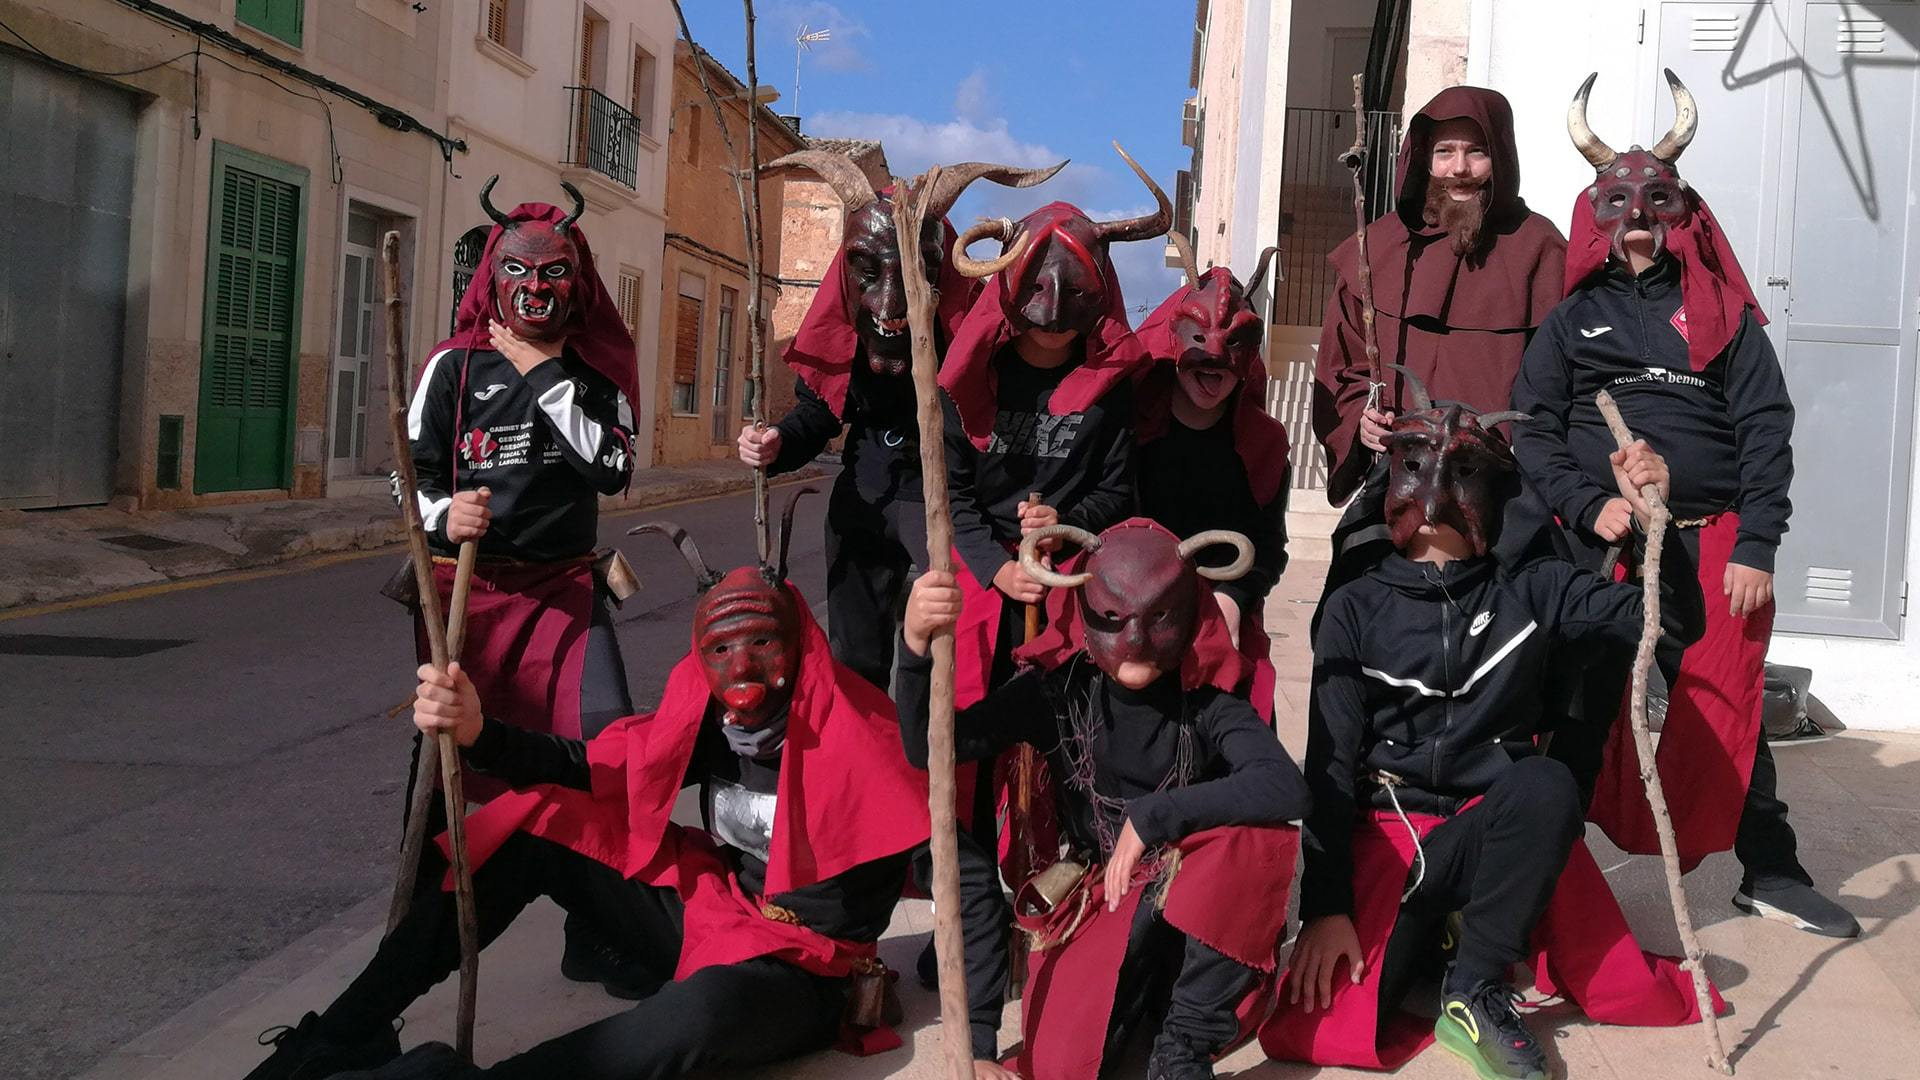 San Antoni Campos kids dressed as demons on their way to school mallorca min